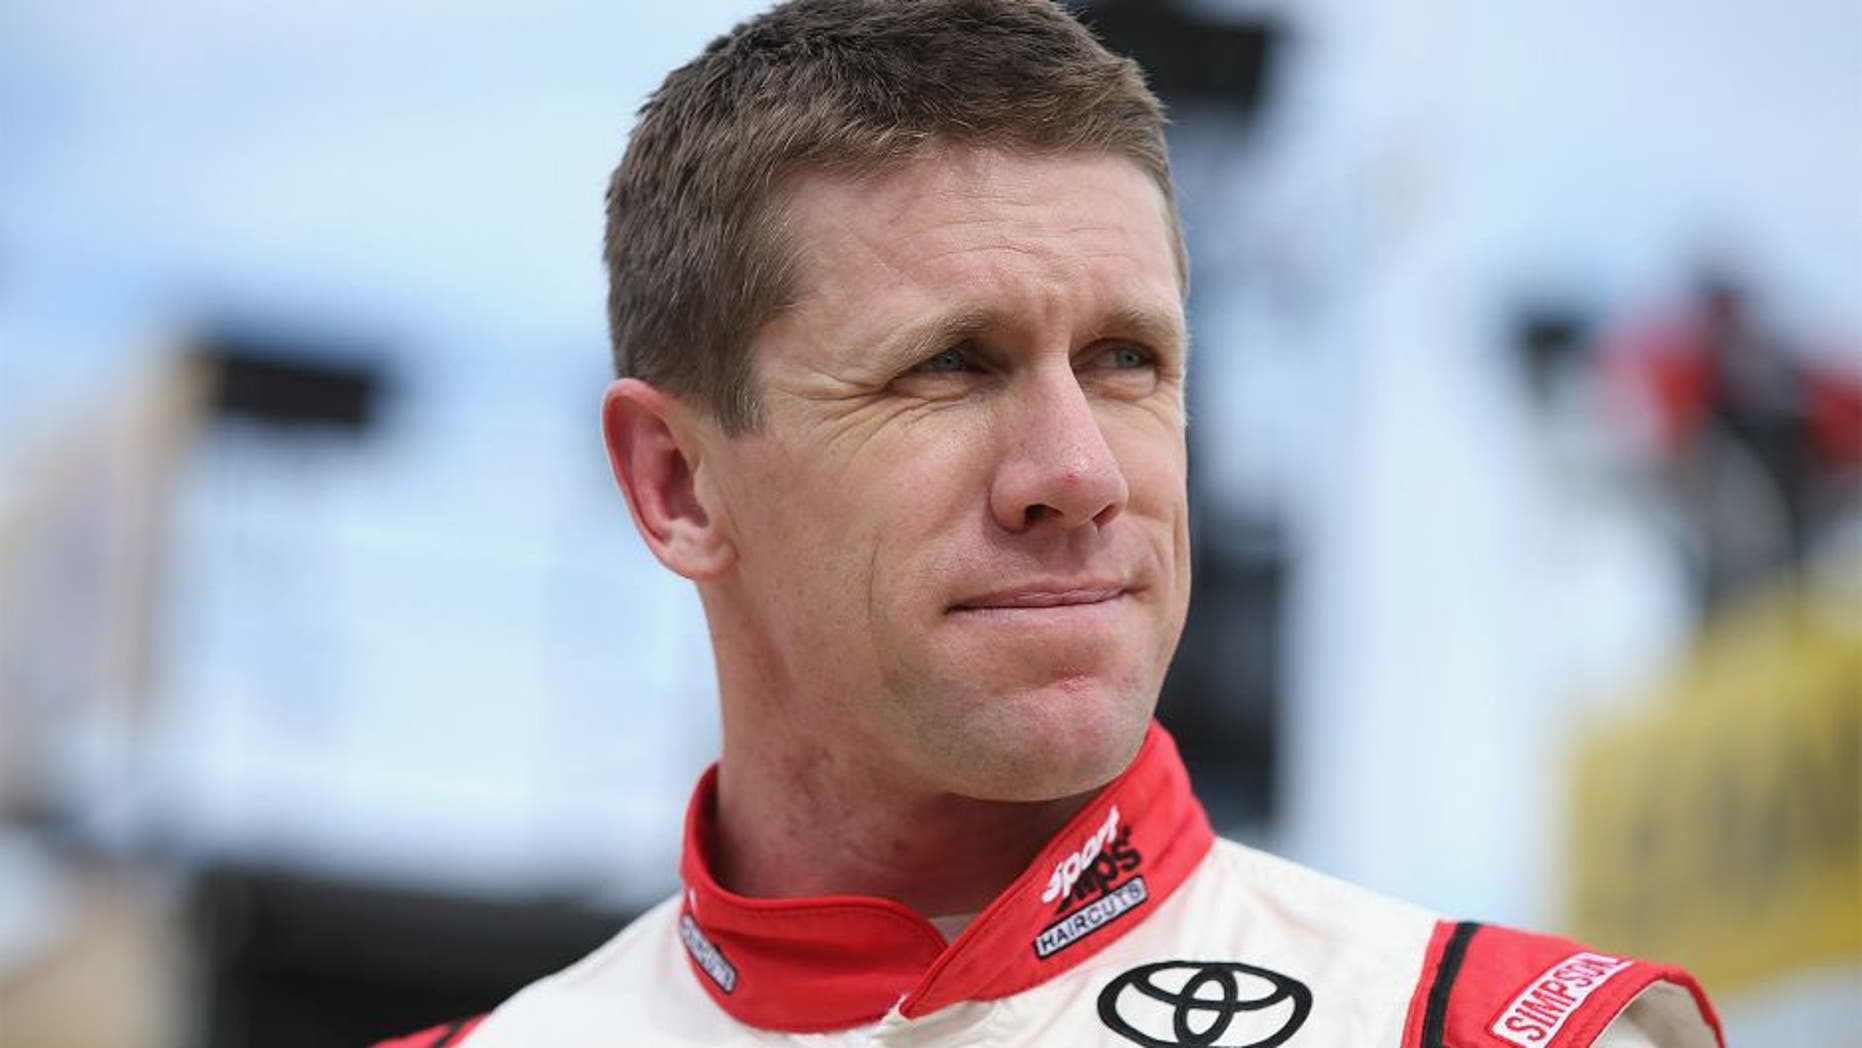 FORT WORTH, TX - NOVEMBER 06: Carl Edwards, driver of the #19 Sport Clips Toyota, stands in the garage area during practice for the NASCAR Sprint Cup Series AAA Texas 500 at Texas Motor Speedway on November 6, 2015 in Fort Worth, Texas. (Photo by Sean Gardner/Getty Images for Texas Motor Speedway)